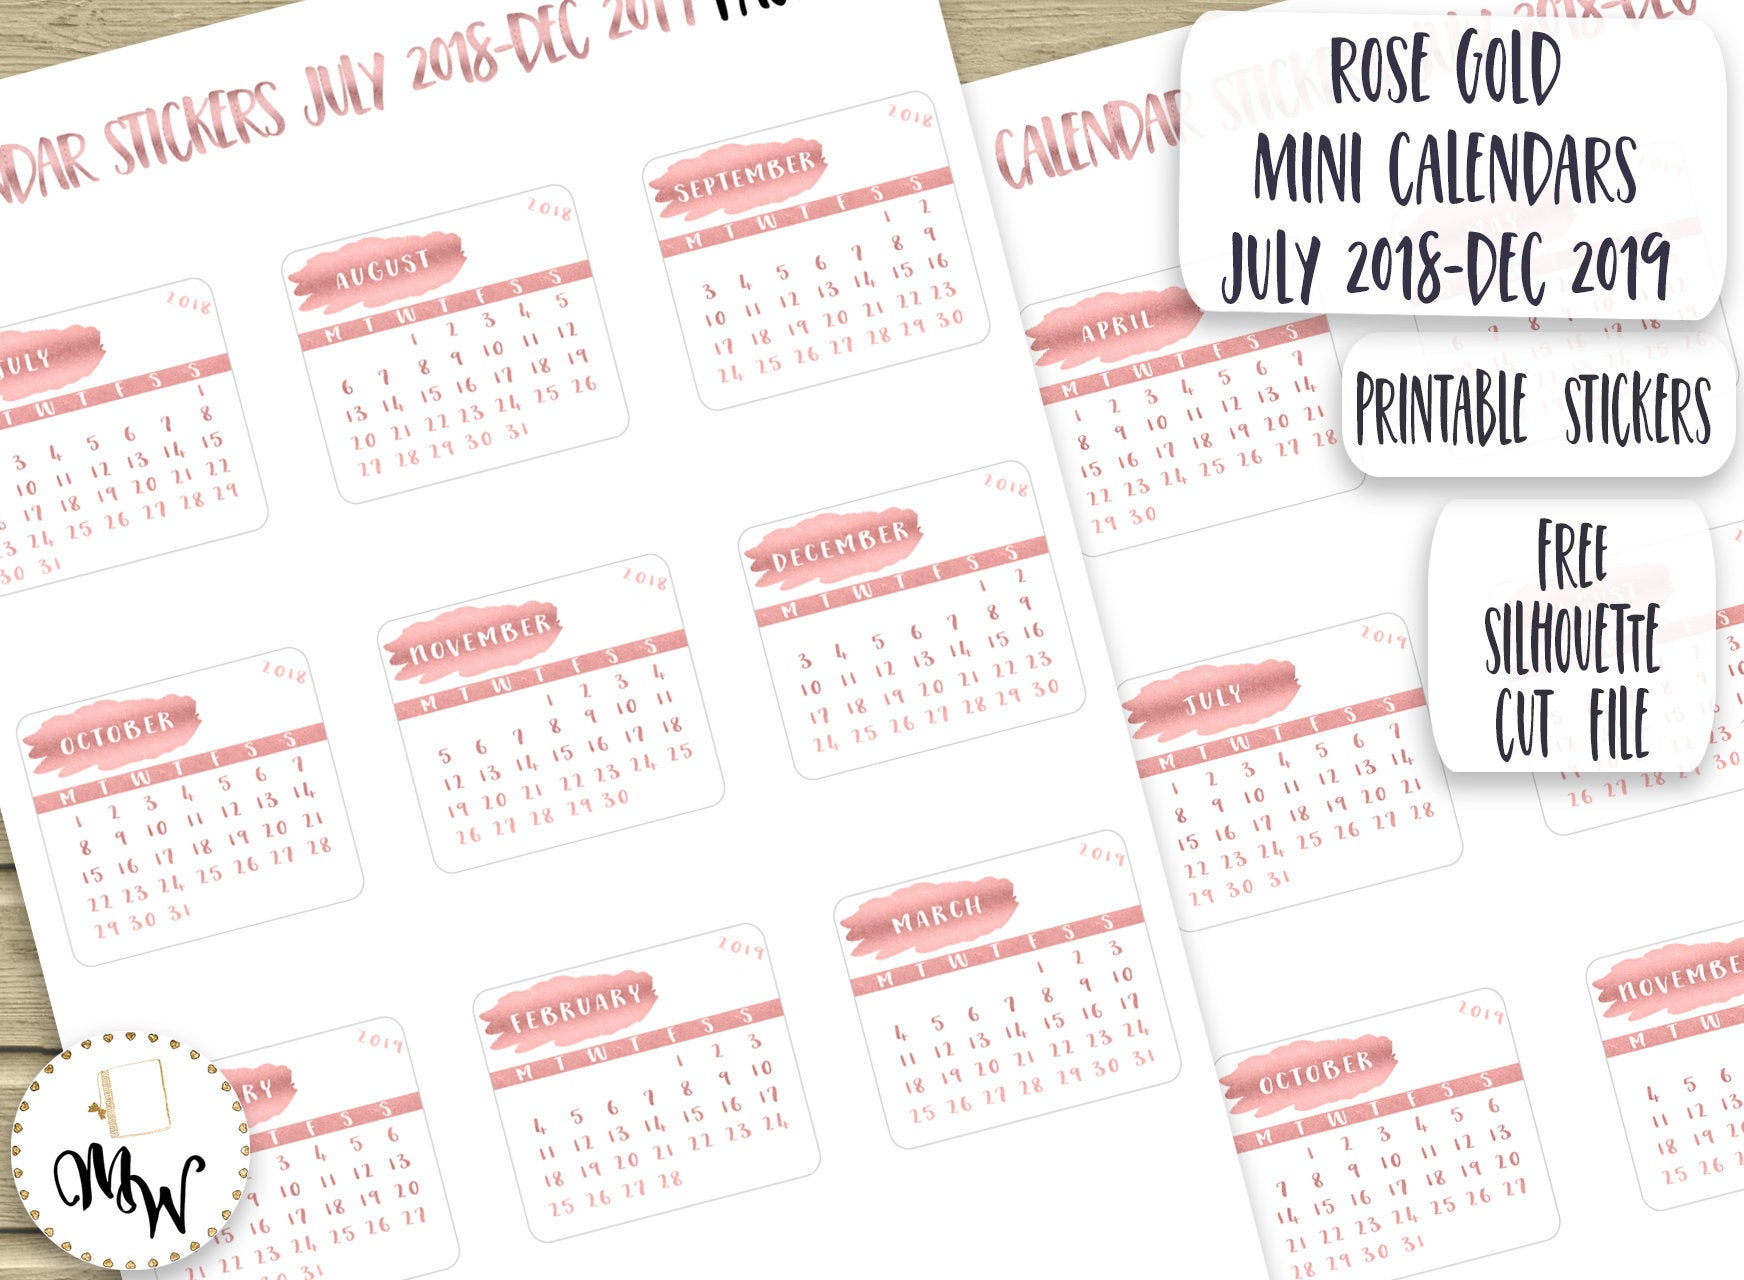 Color Pages ~ Rose Gold Miniendarsendar Stickers For Planner